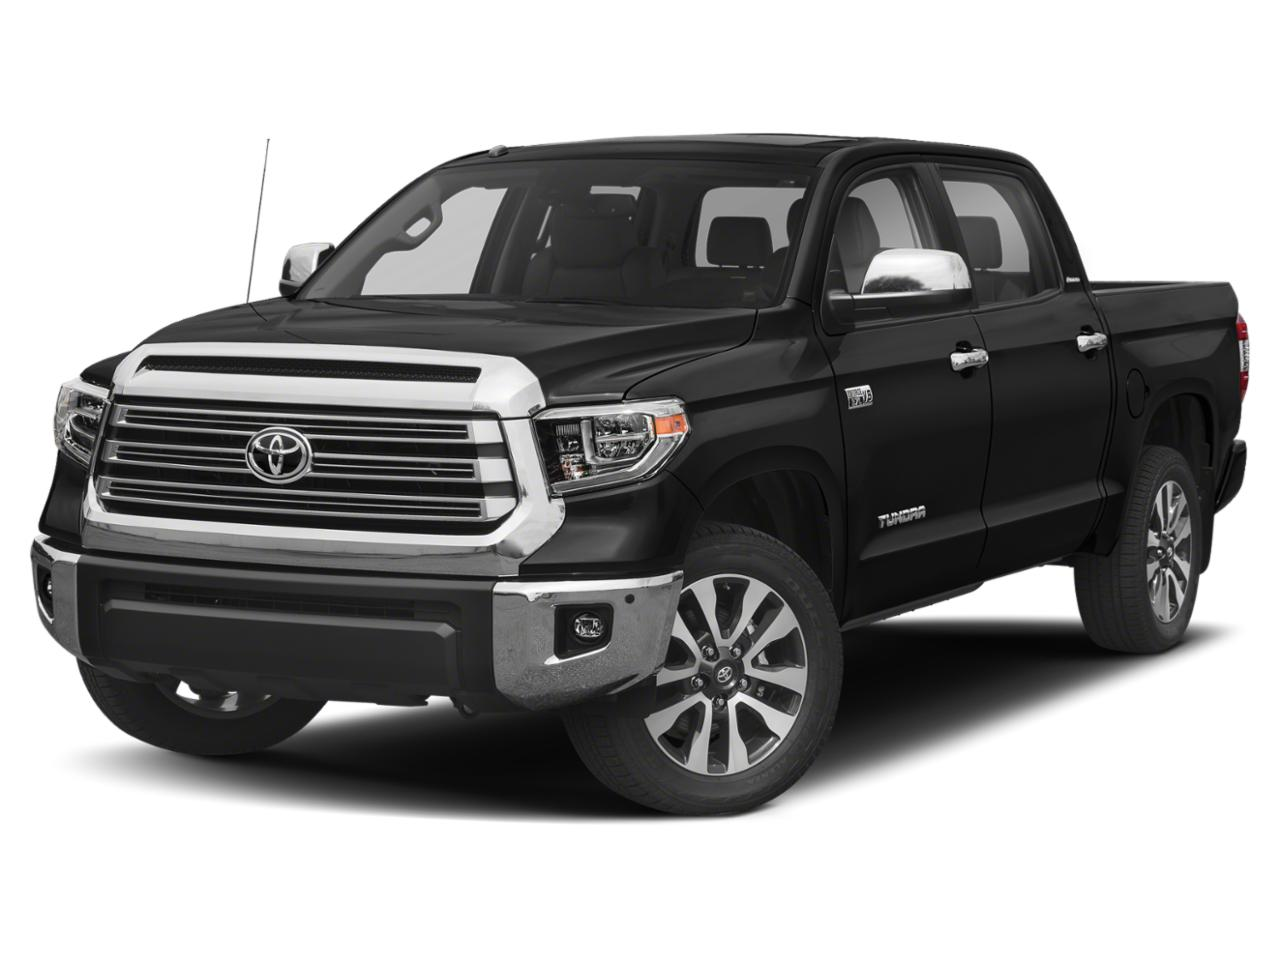 2018 Toyota Tundra 4WD Vehicle Photo in San Antonio, TX 78238